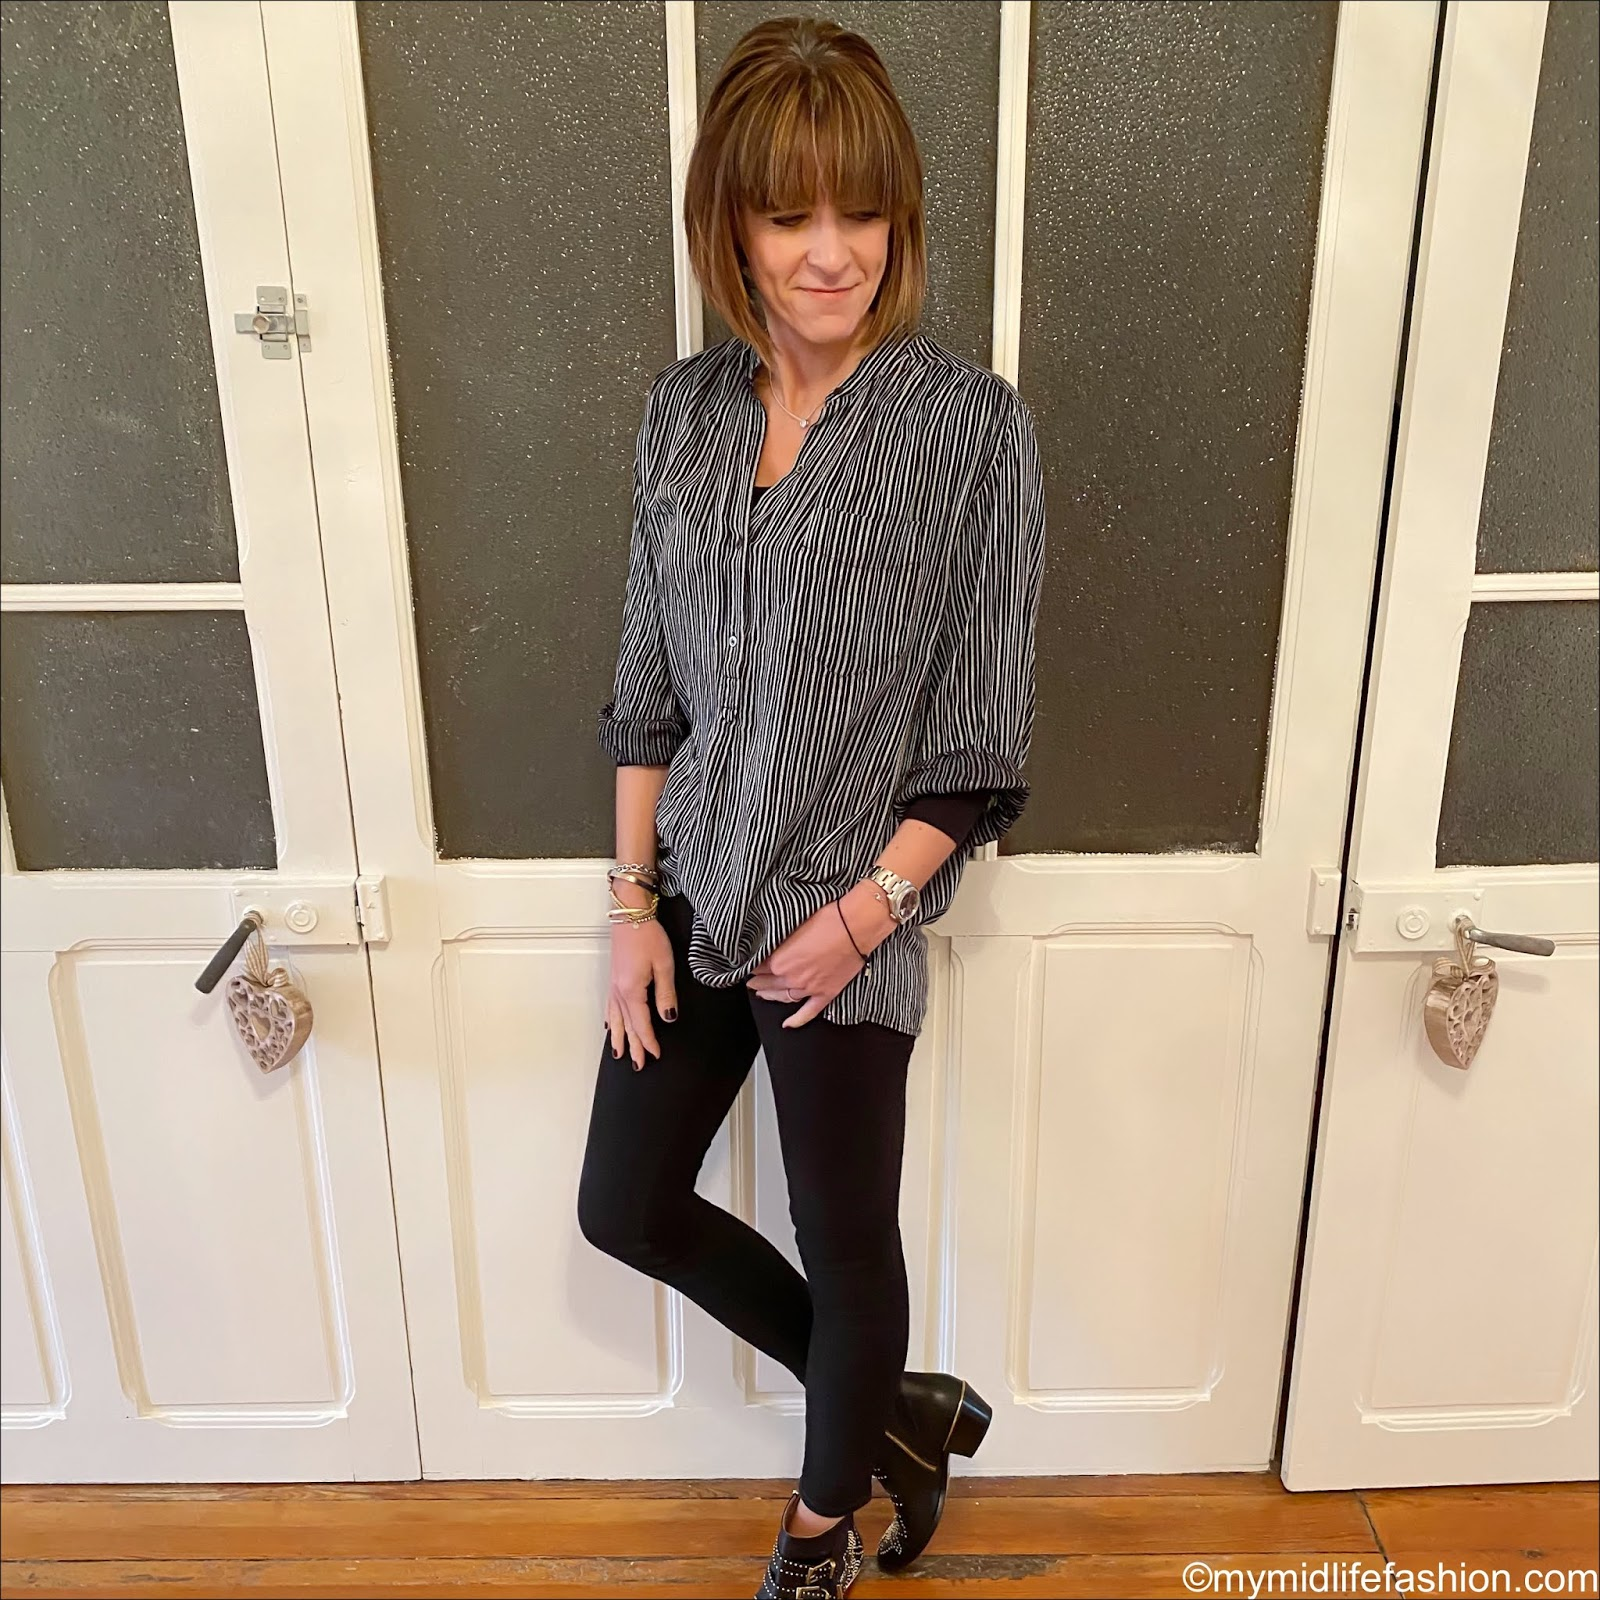 my midlife fashion, Uniqlo heat tech top, Isabel Marant Etoile stripe oversized shirt, j crew 8 inch toothpick jeans in true black, Chloe Susanna studded leather ankle boots